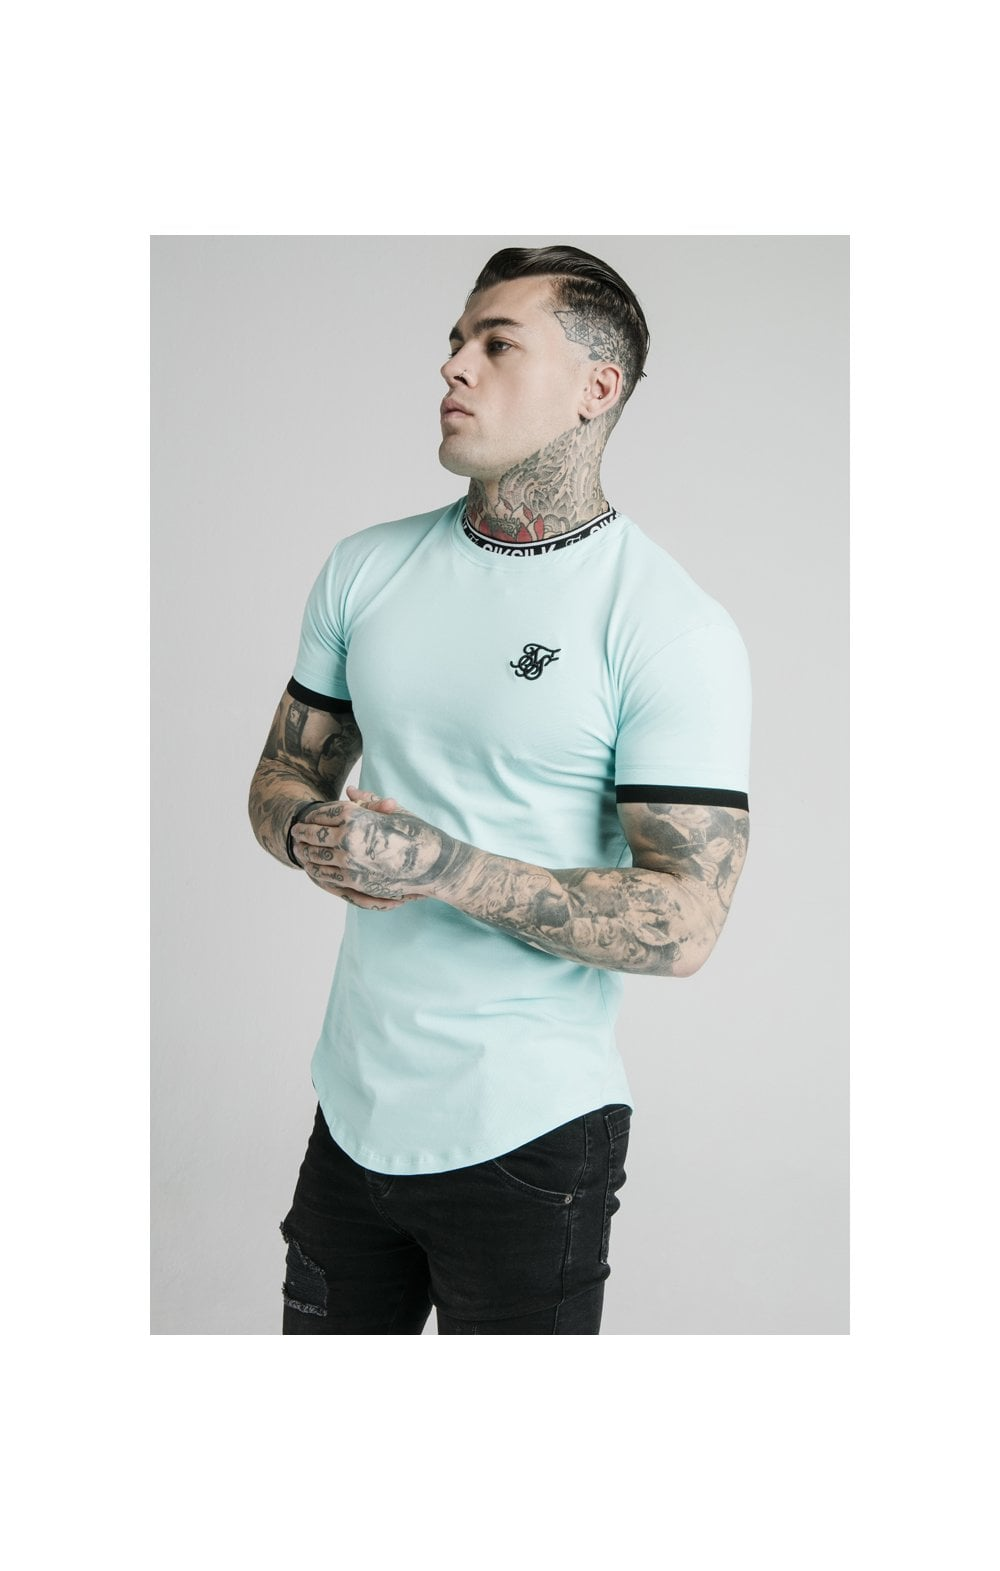 SikSilk S/S Inset Tape Collar Gym Tee - Teal